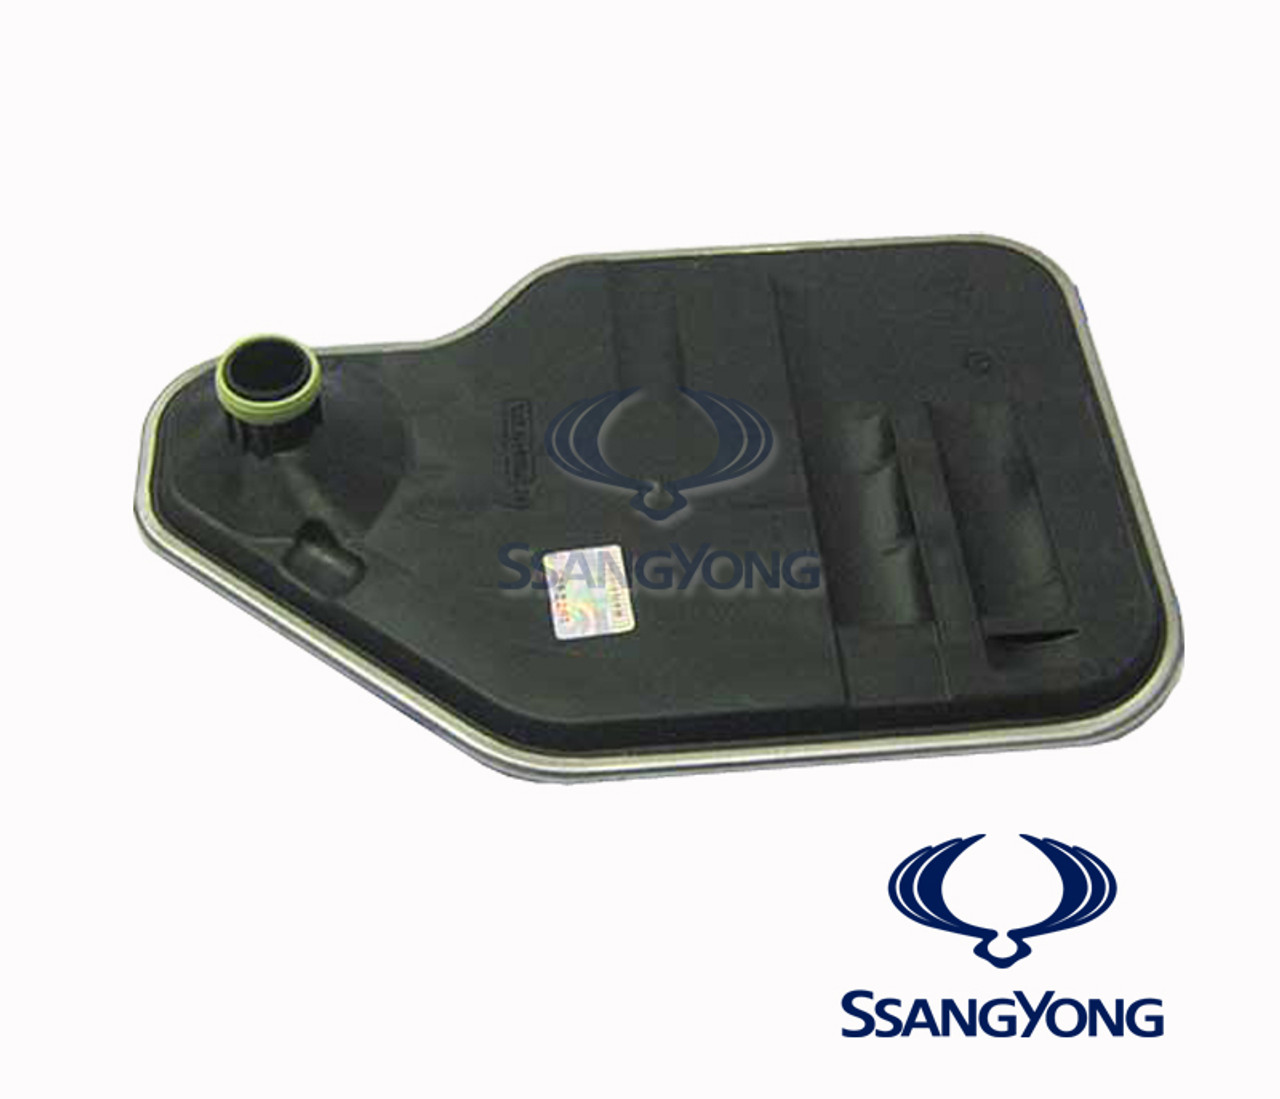 Genuine Oil Dipstick Gauge for Ssangyong REXTON KYRON D27DT 6650101072